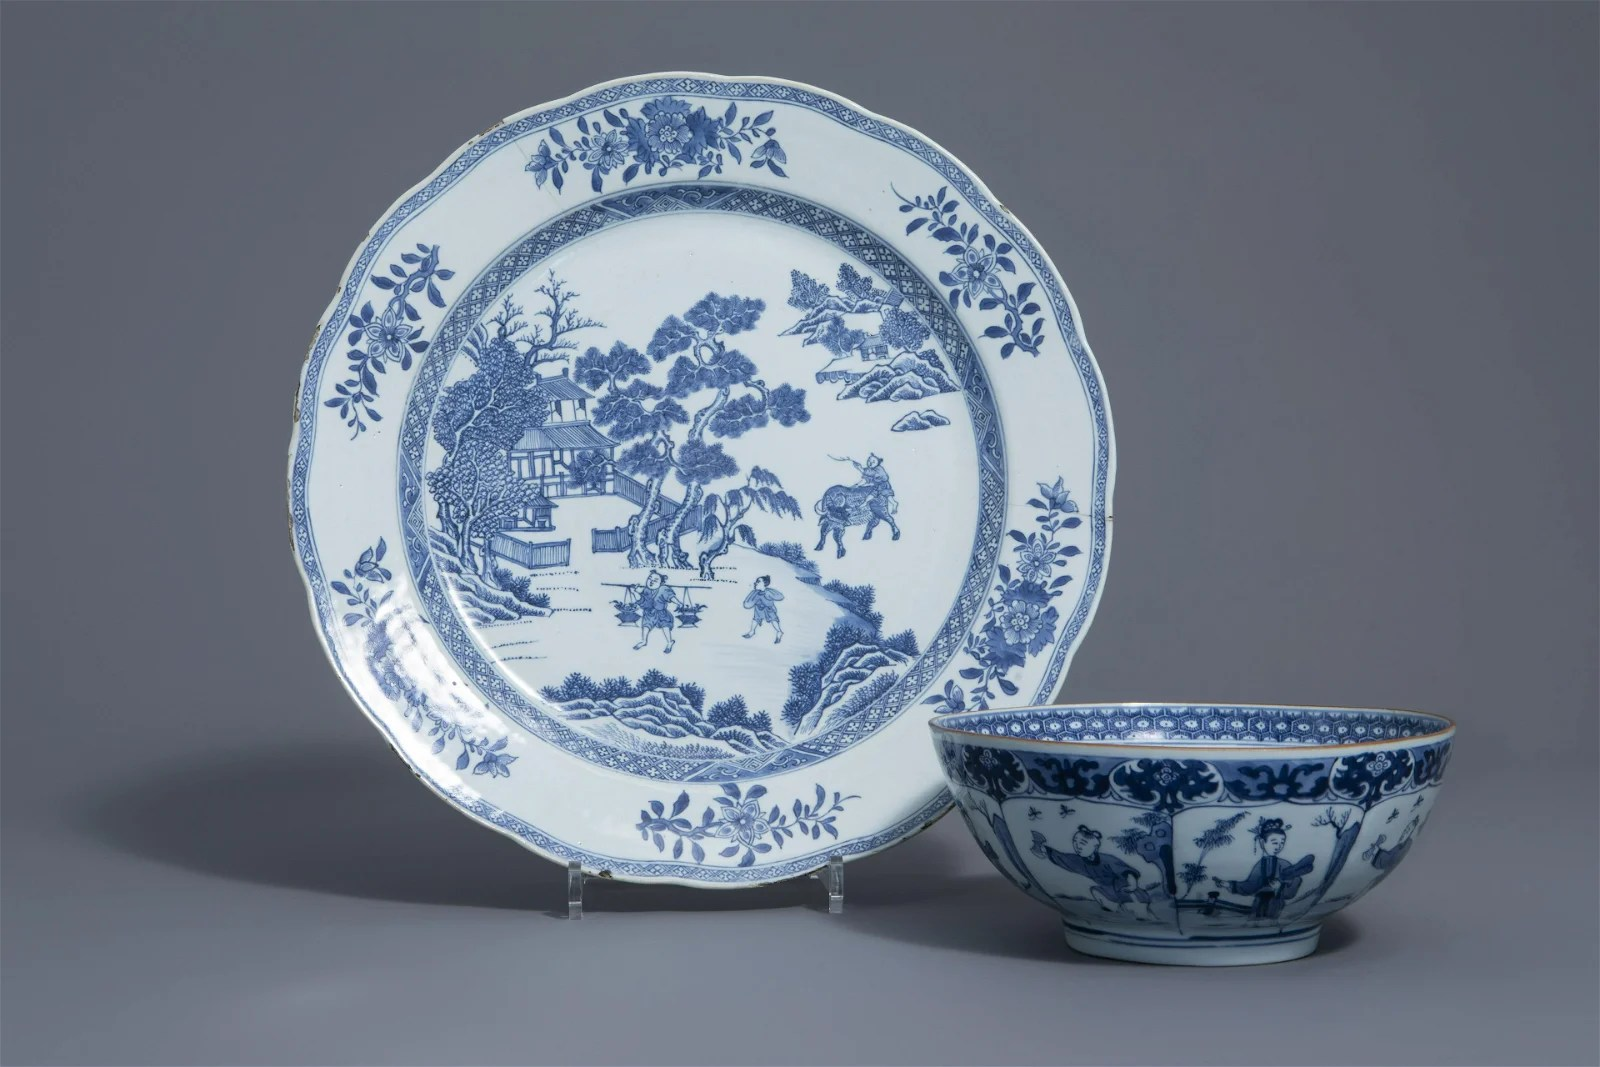 A large Chinese blue and white dish and a bowl with